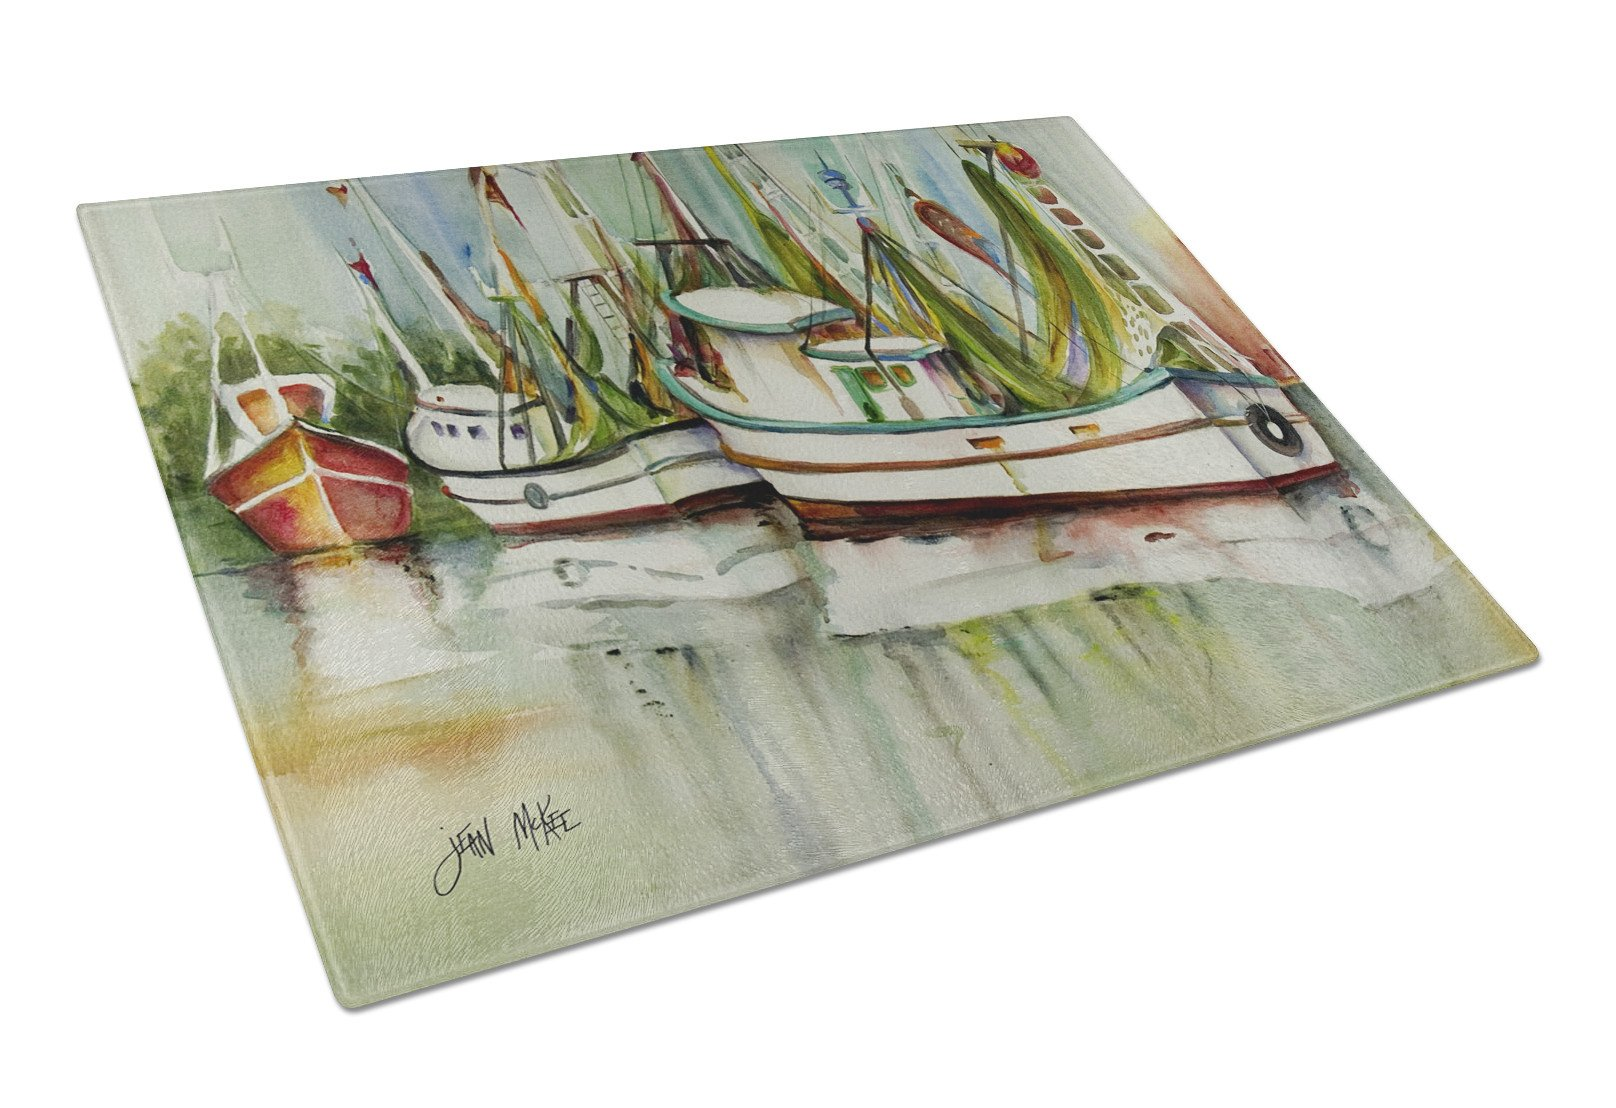 Ocean Springs Shrimper Glass Cutting Board Large JMK1067LCB by Caroline's Treasures